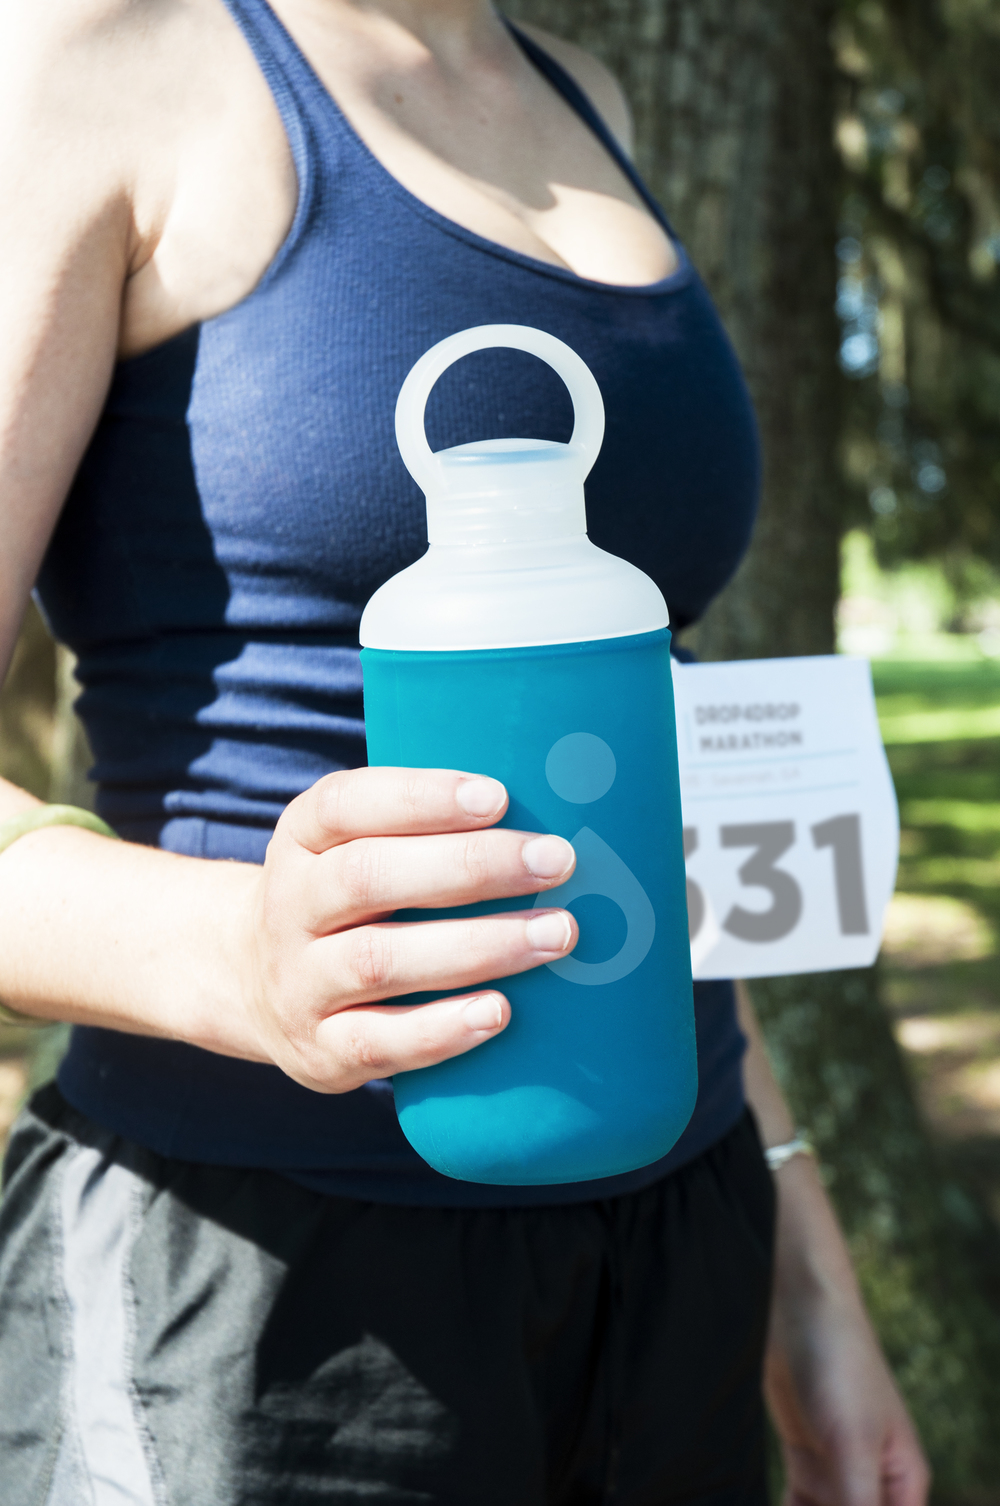 Participants receive reusable water bottles as apart of a their reward to finishing the race